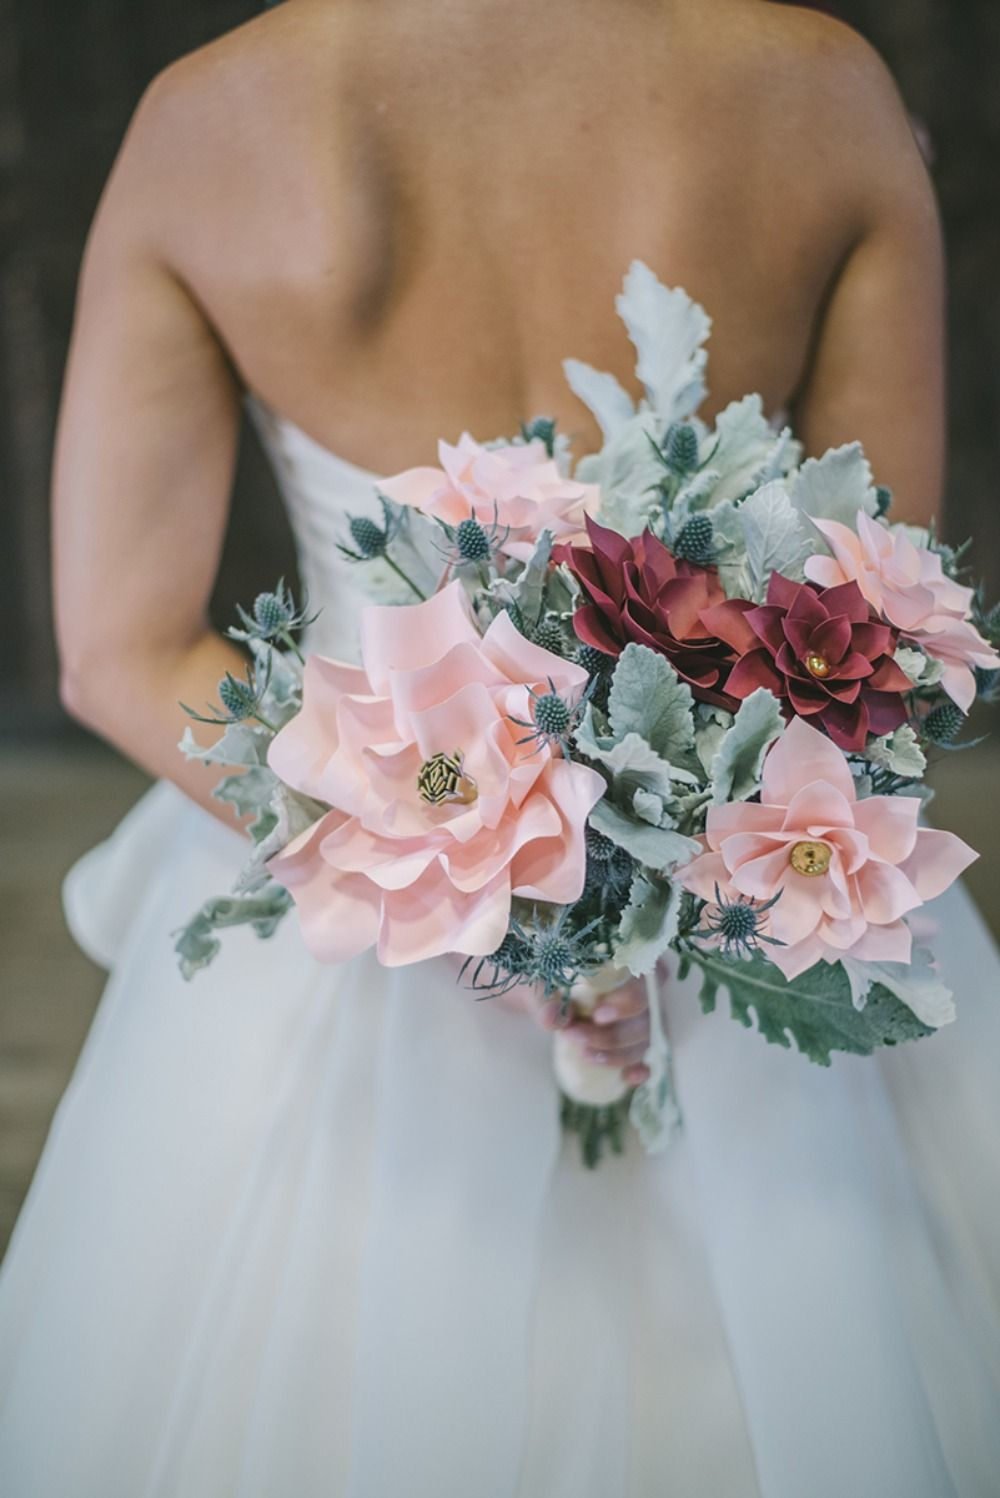 Live flowers not an option check out this paper flower wedding